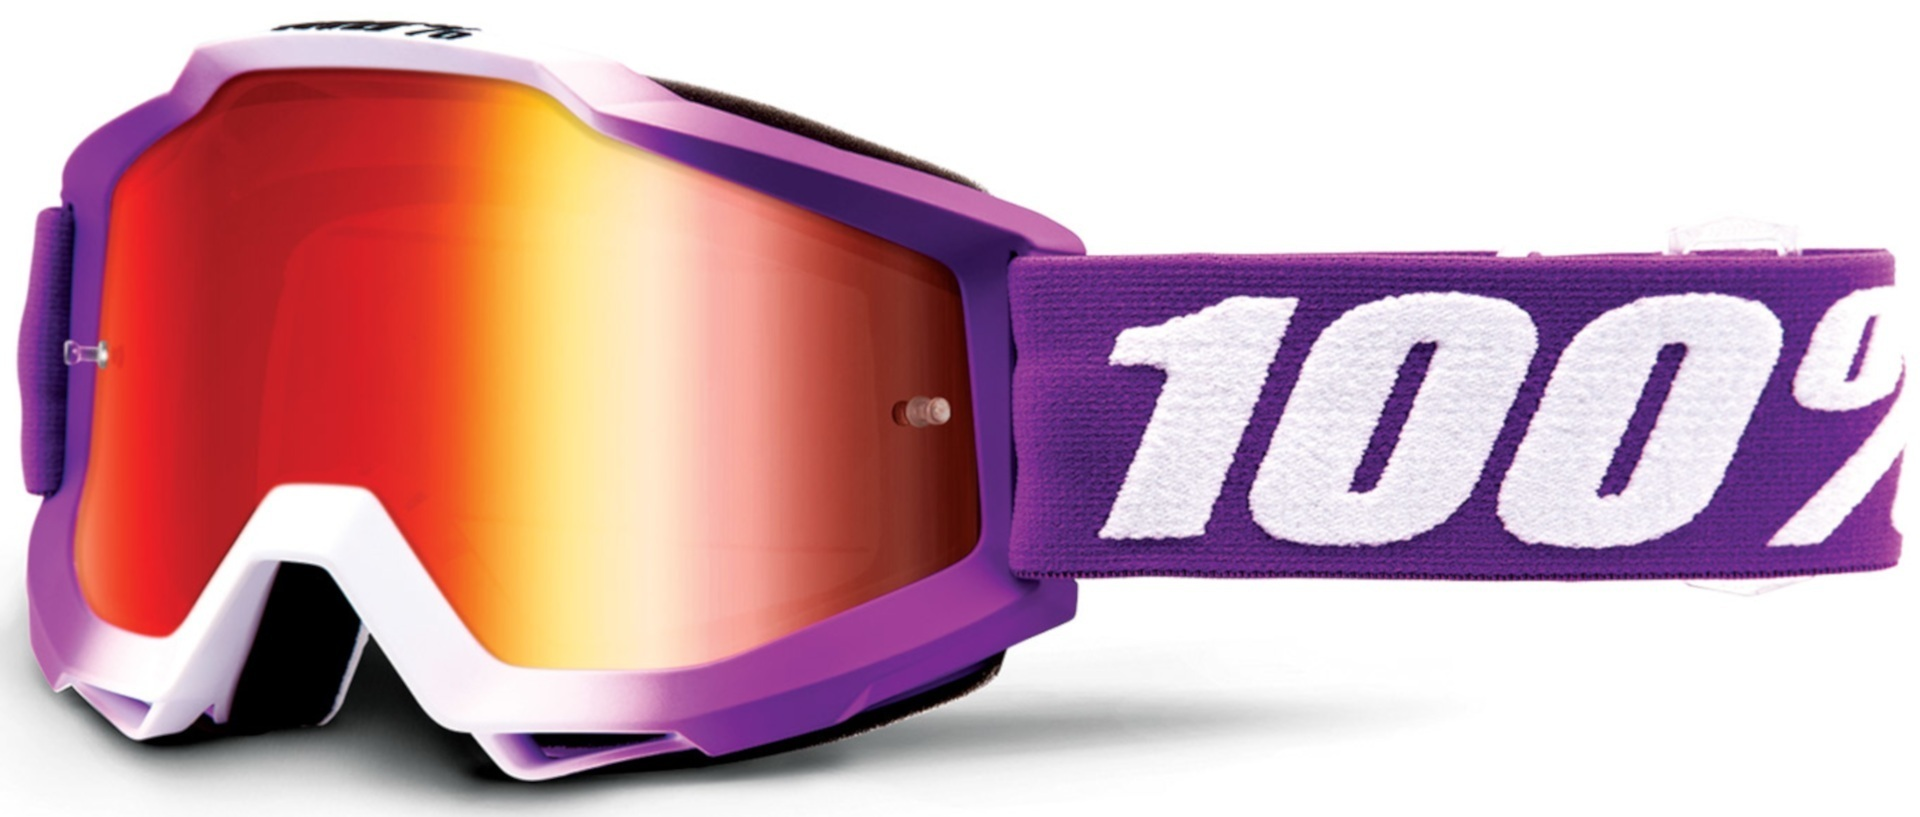 100% Accuri Extra Framboise Motocross Brille, weiss-lila, weiss-lila RC Modellbau